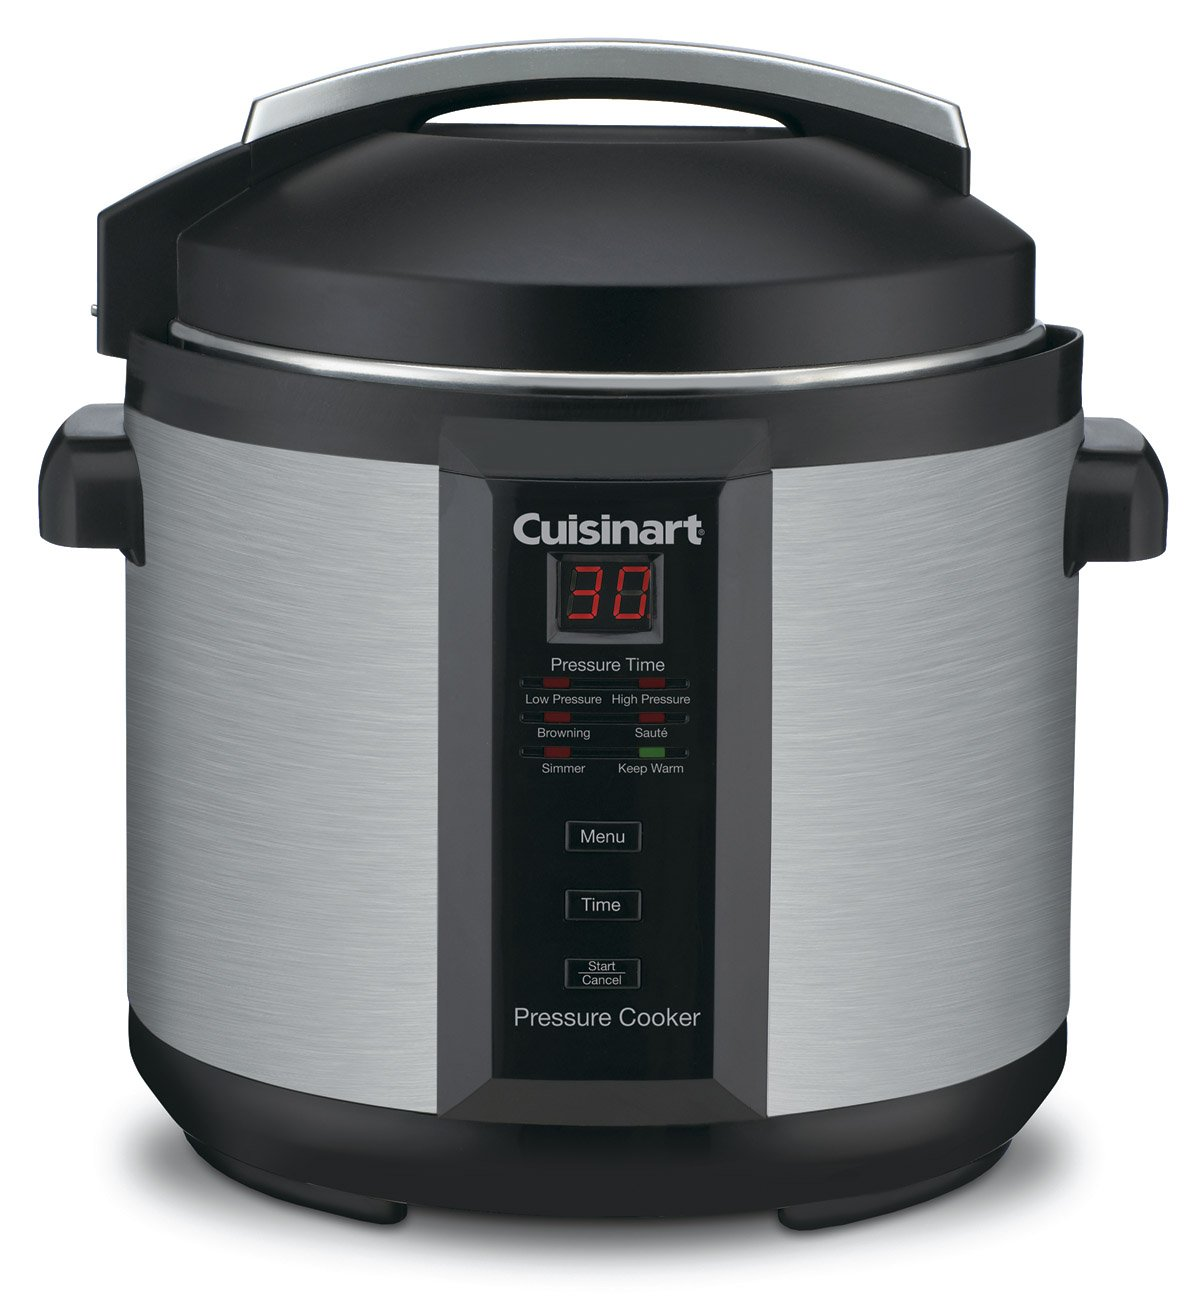 Cuisinart CPC-600AMZ 1000-Watt 6-Quart Electric Pressure Cooker